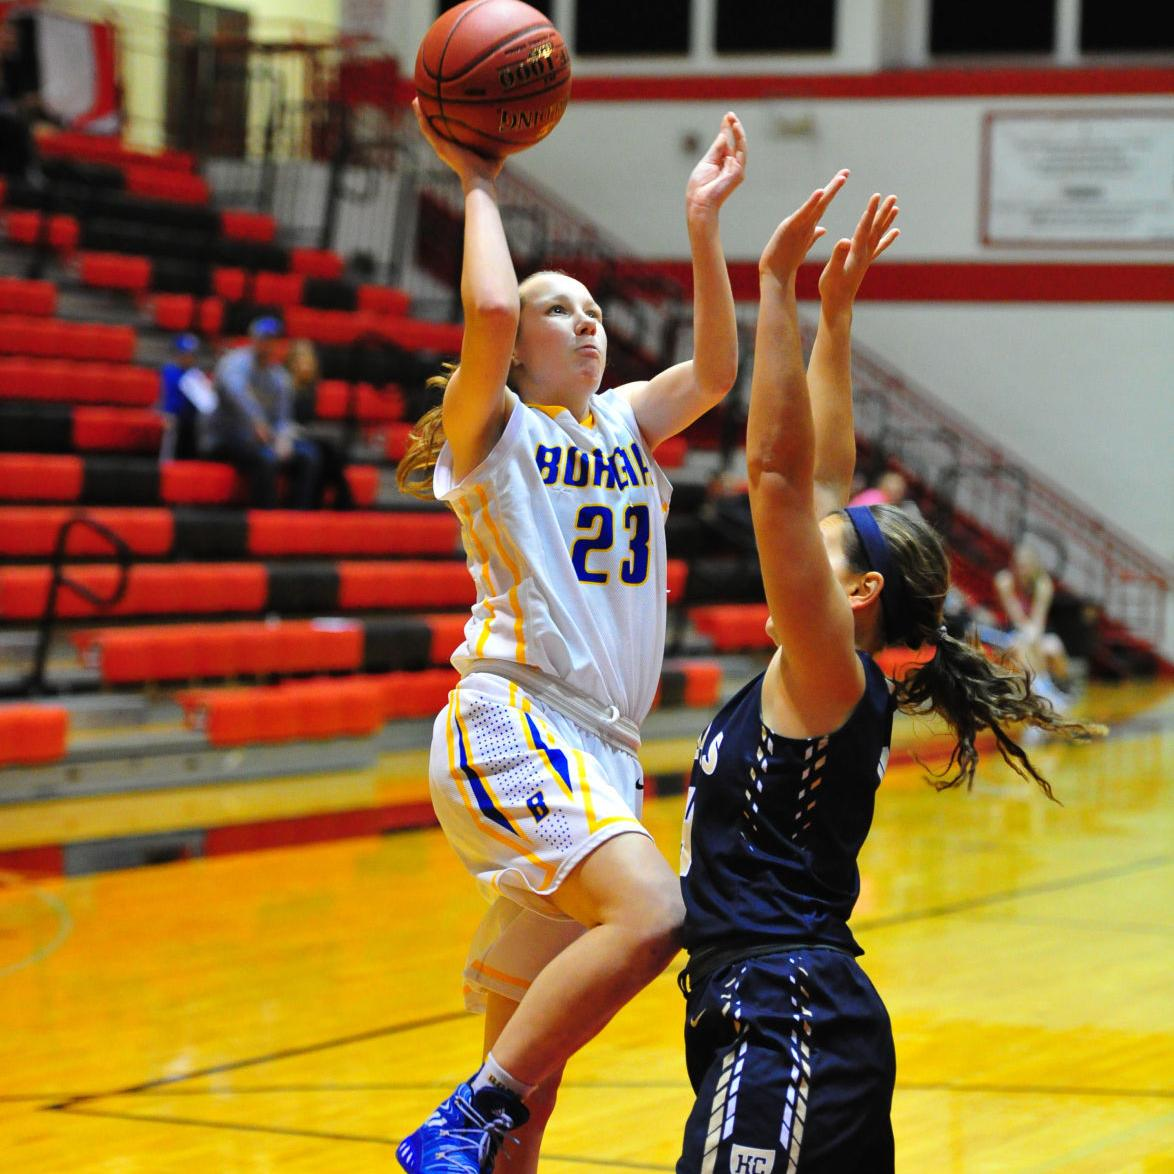 Girls Basketball — Borgia vs. Helias, Union Tournament